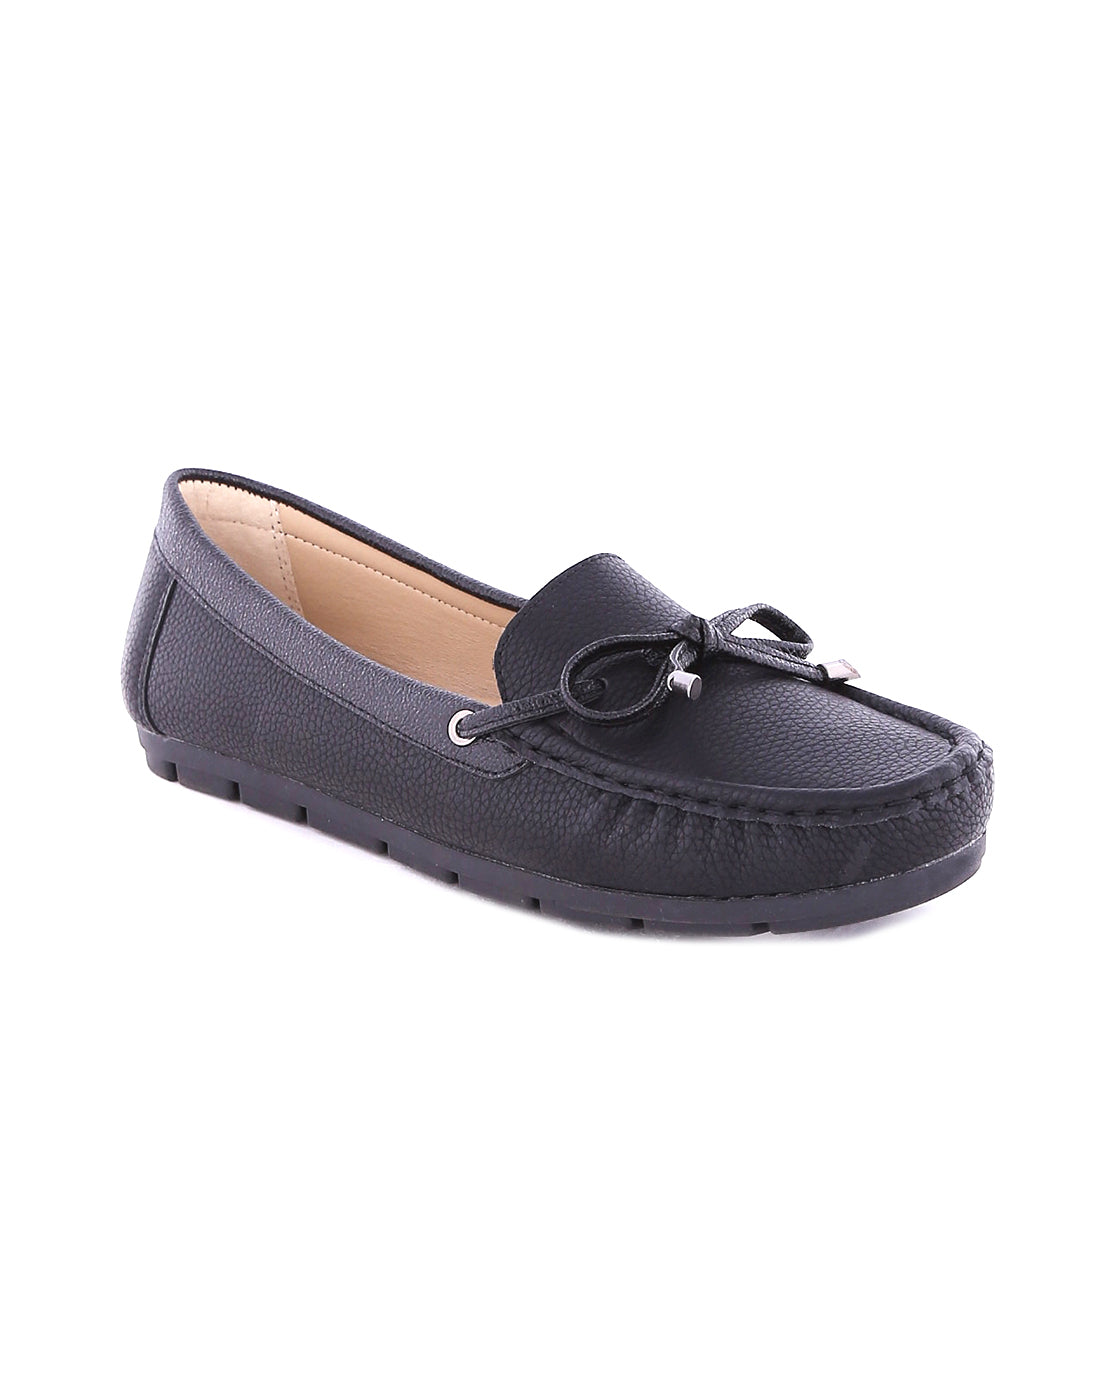 Berenicea Black textured Loafers